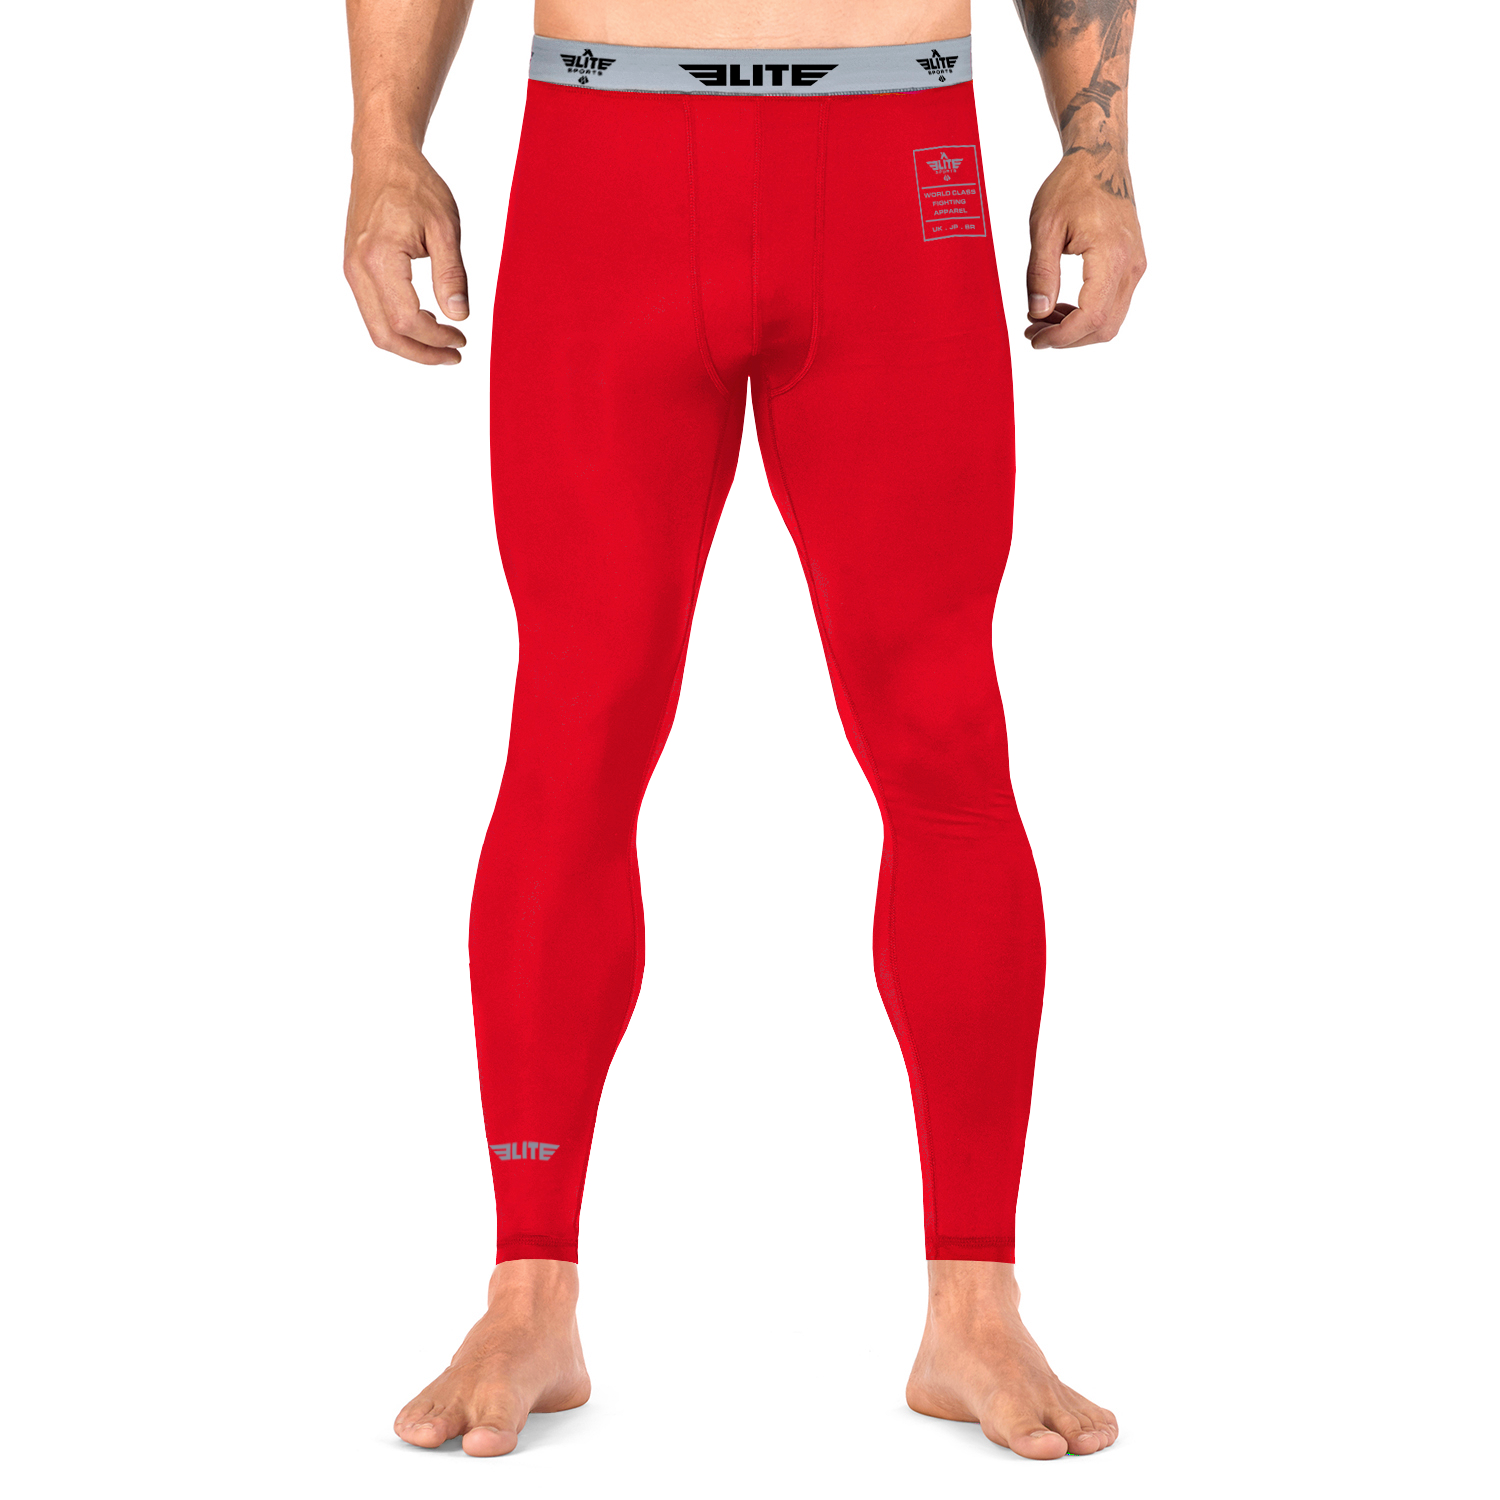 Elite Sports Plain Red Compression Training Spat Pants